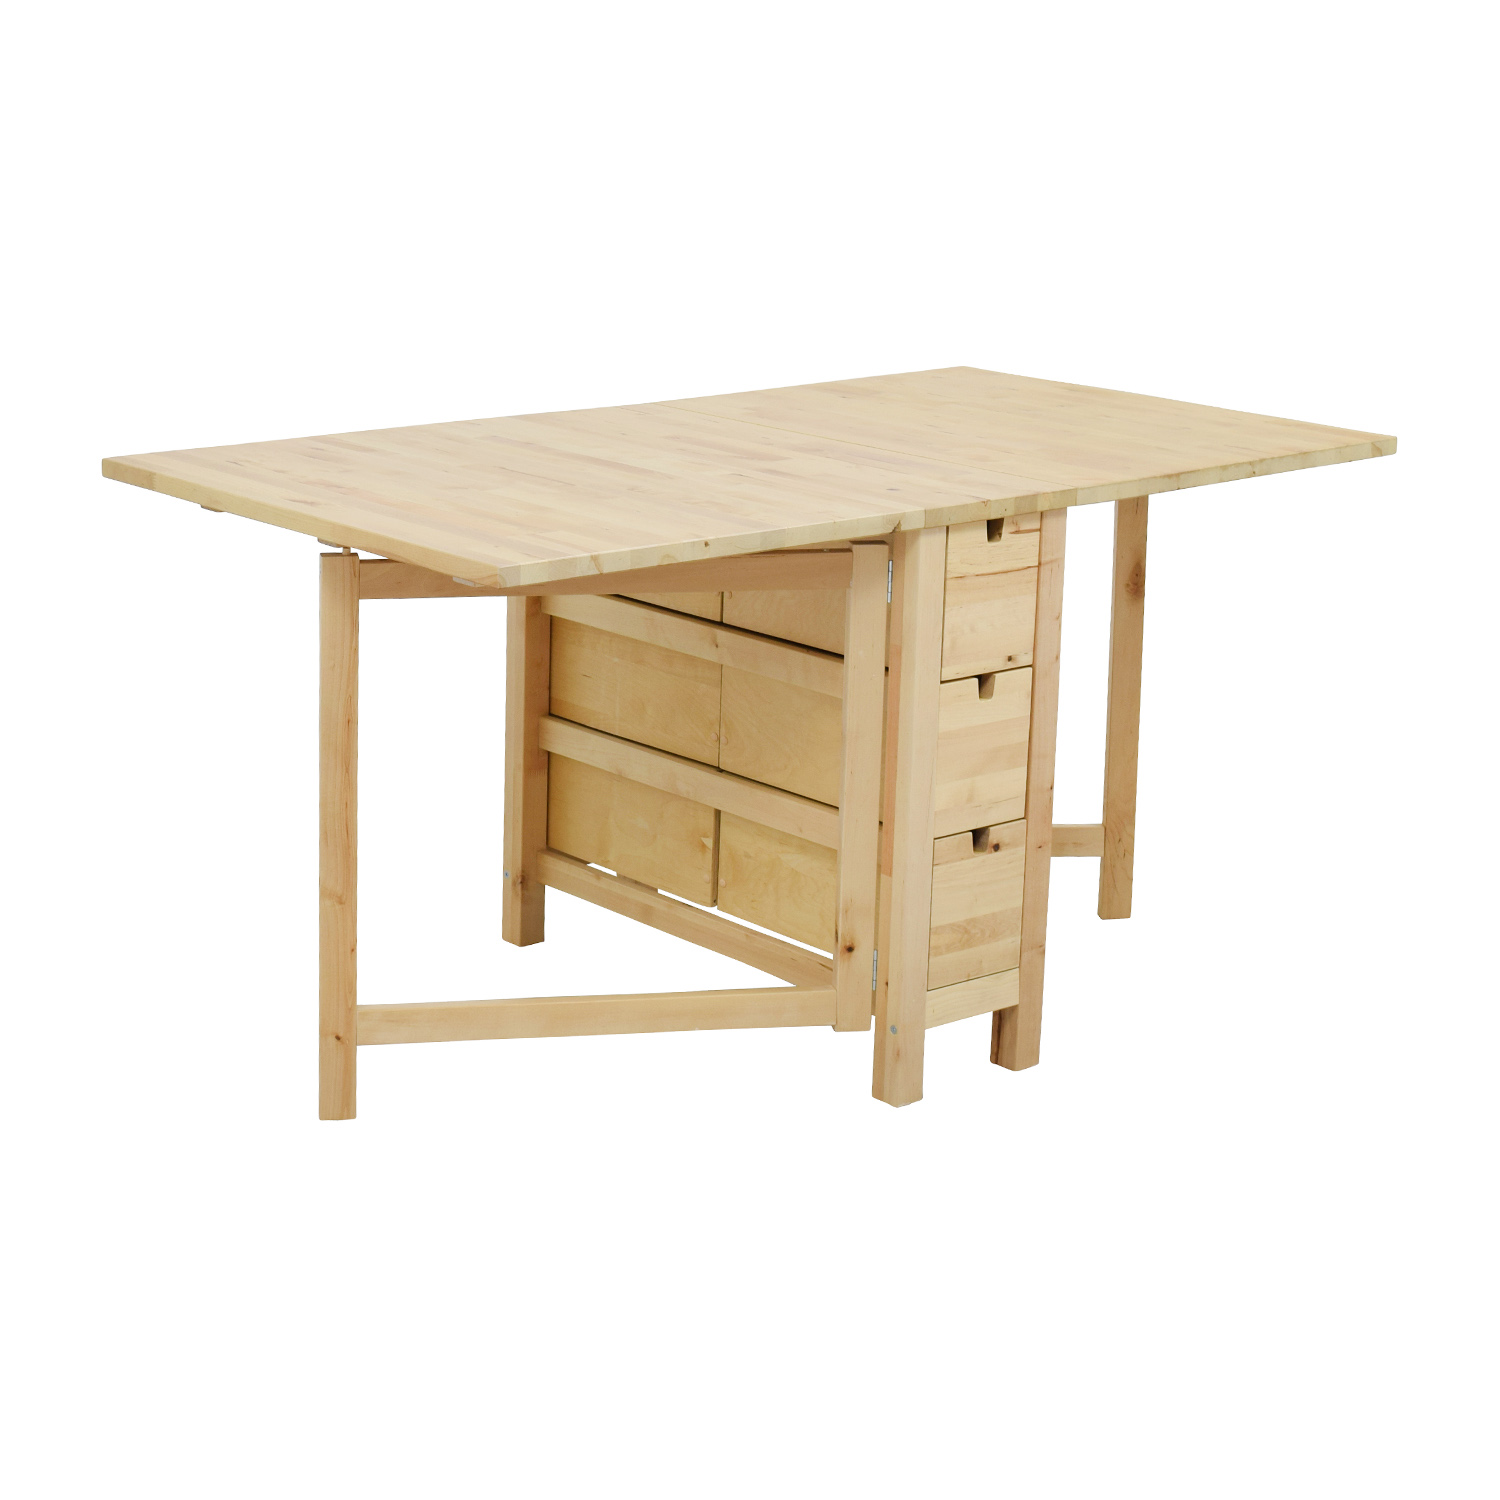 Ikea Leaf Table 49% Off - Ikea Ikea Birch Norden Gateleg Drop-leaf Table